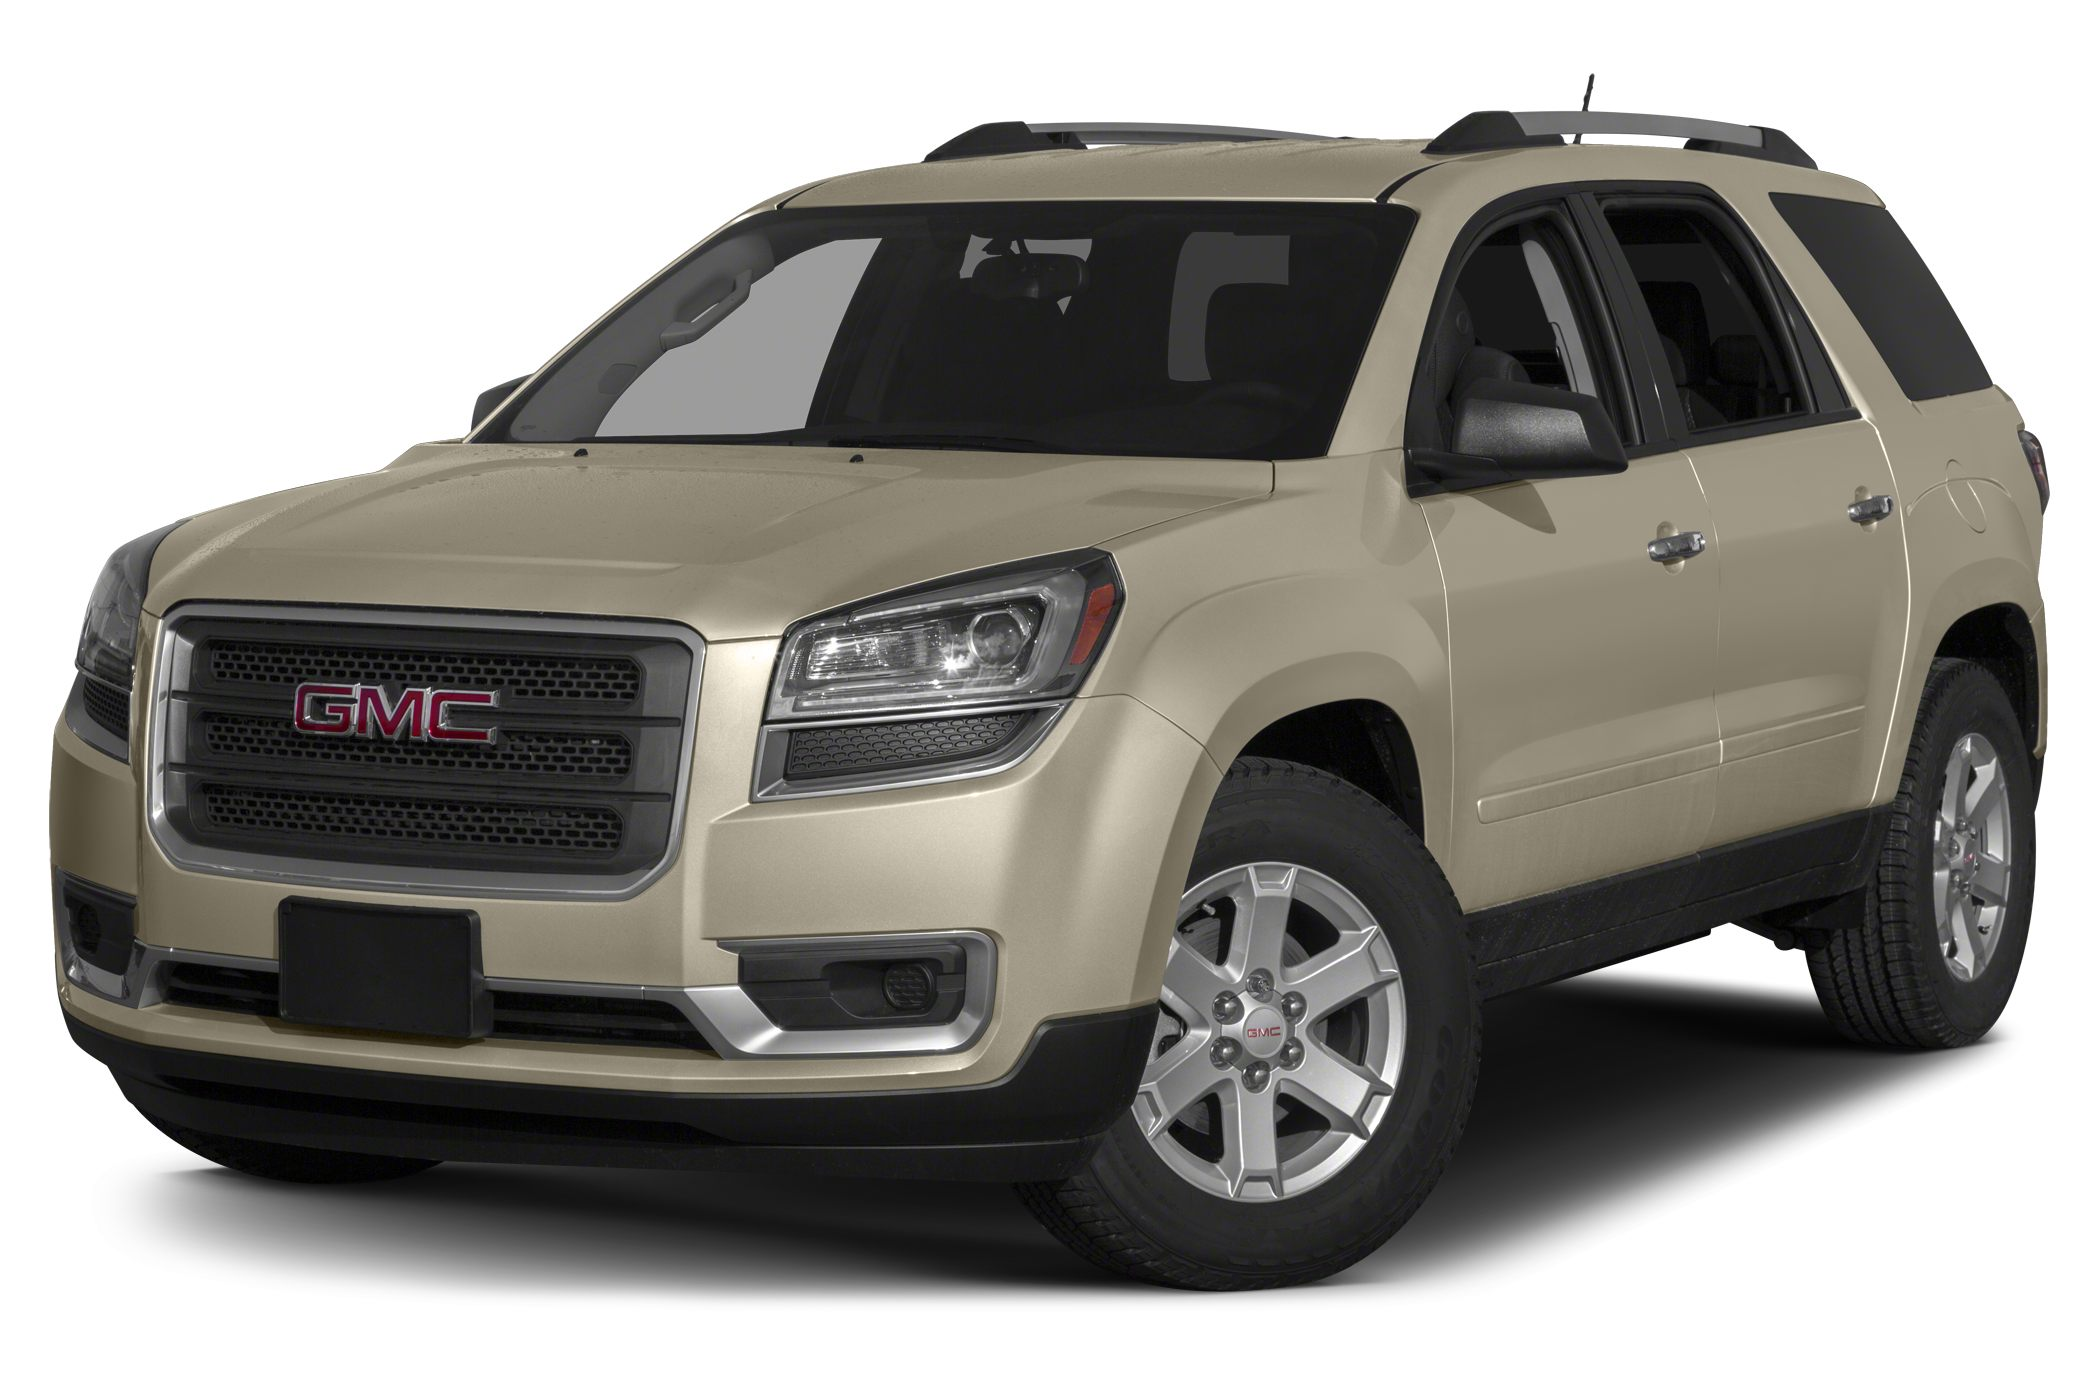 2015 GMC Acadia SLE-2 SUV for sale in Los Angeles for $37,730 with 0 miles